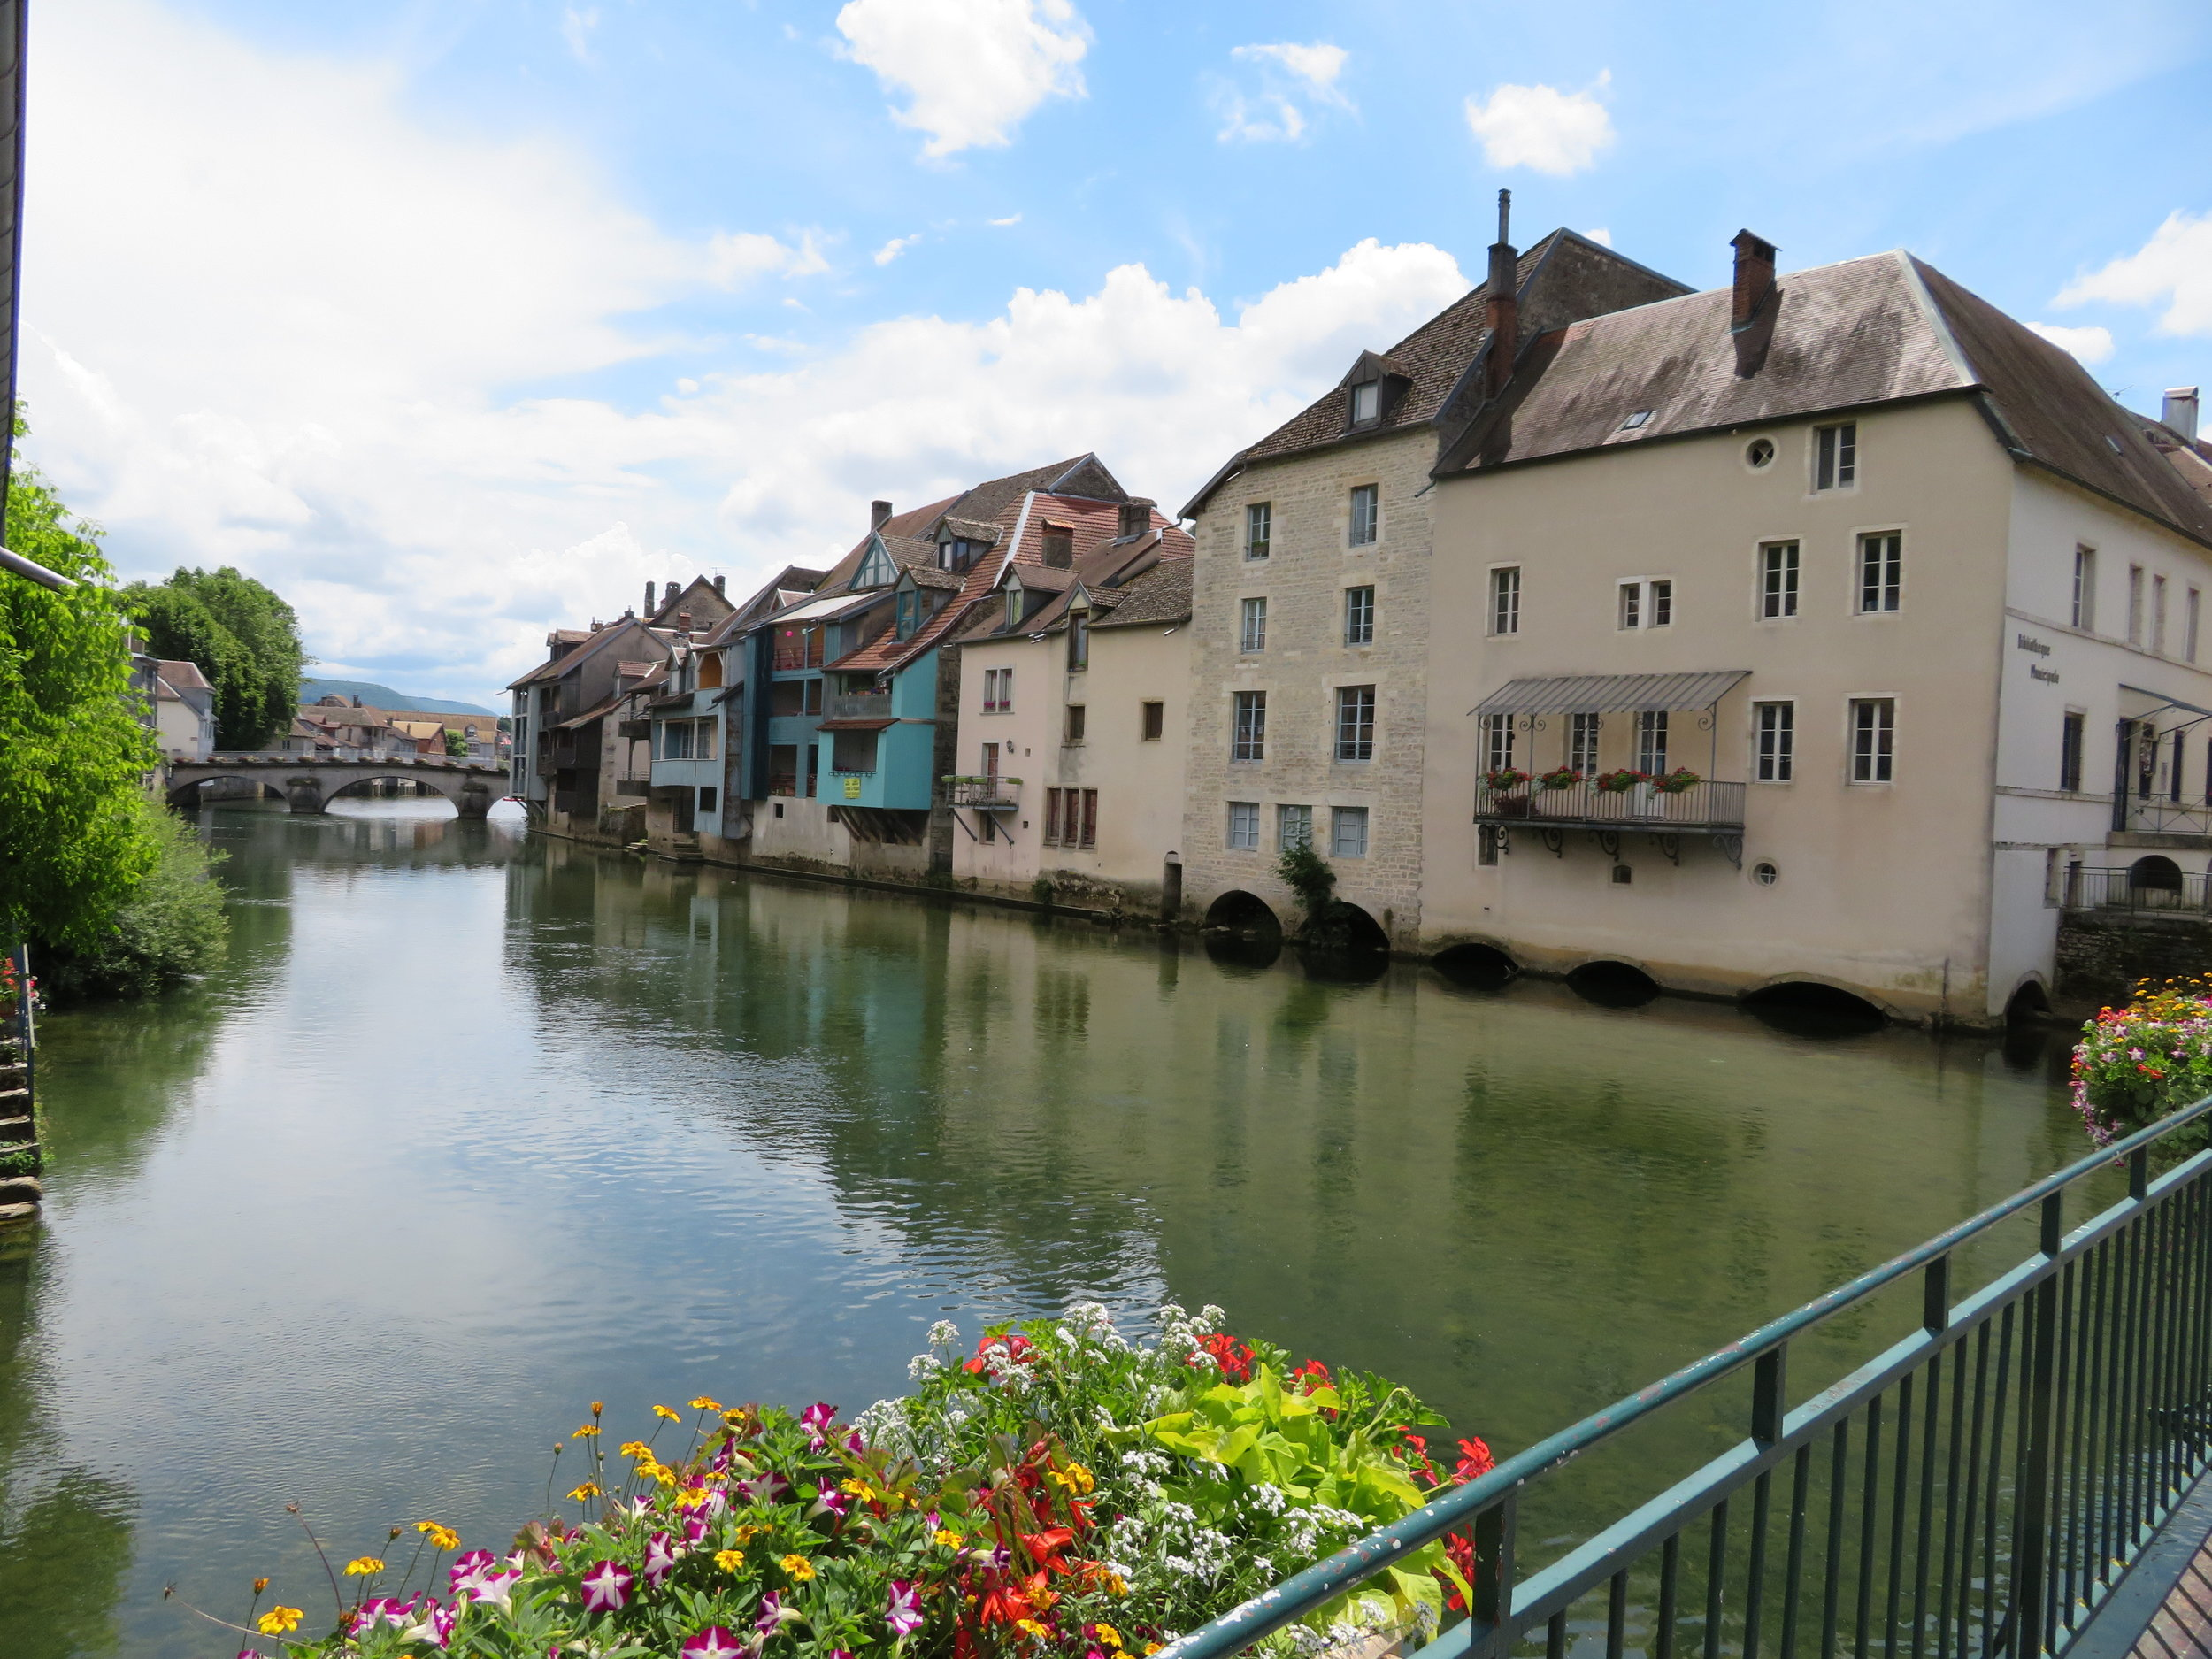 Ornans was a charming little riverside town … no wonder there were no rooms available.